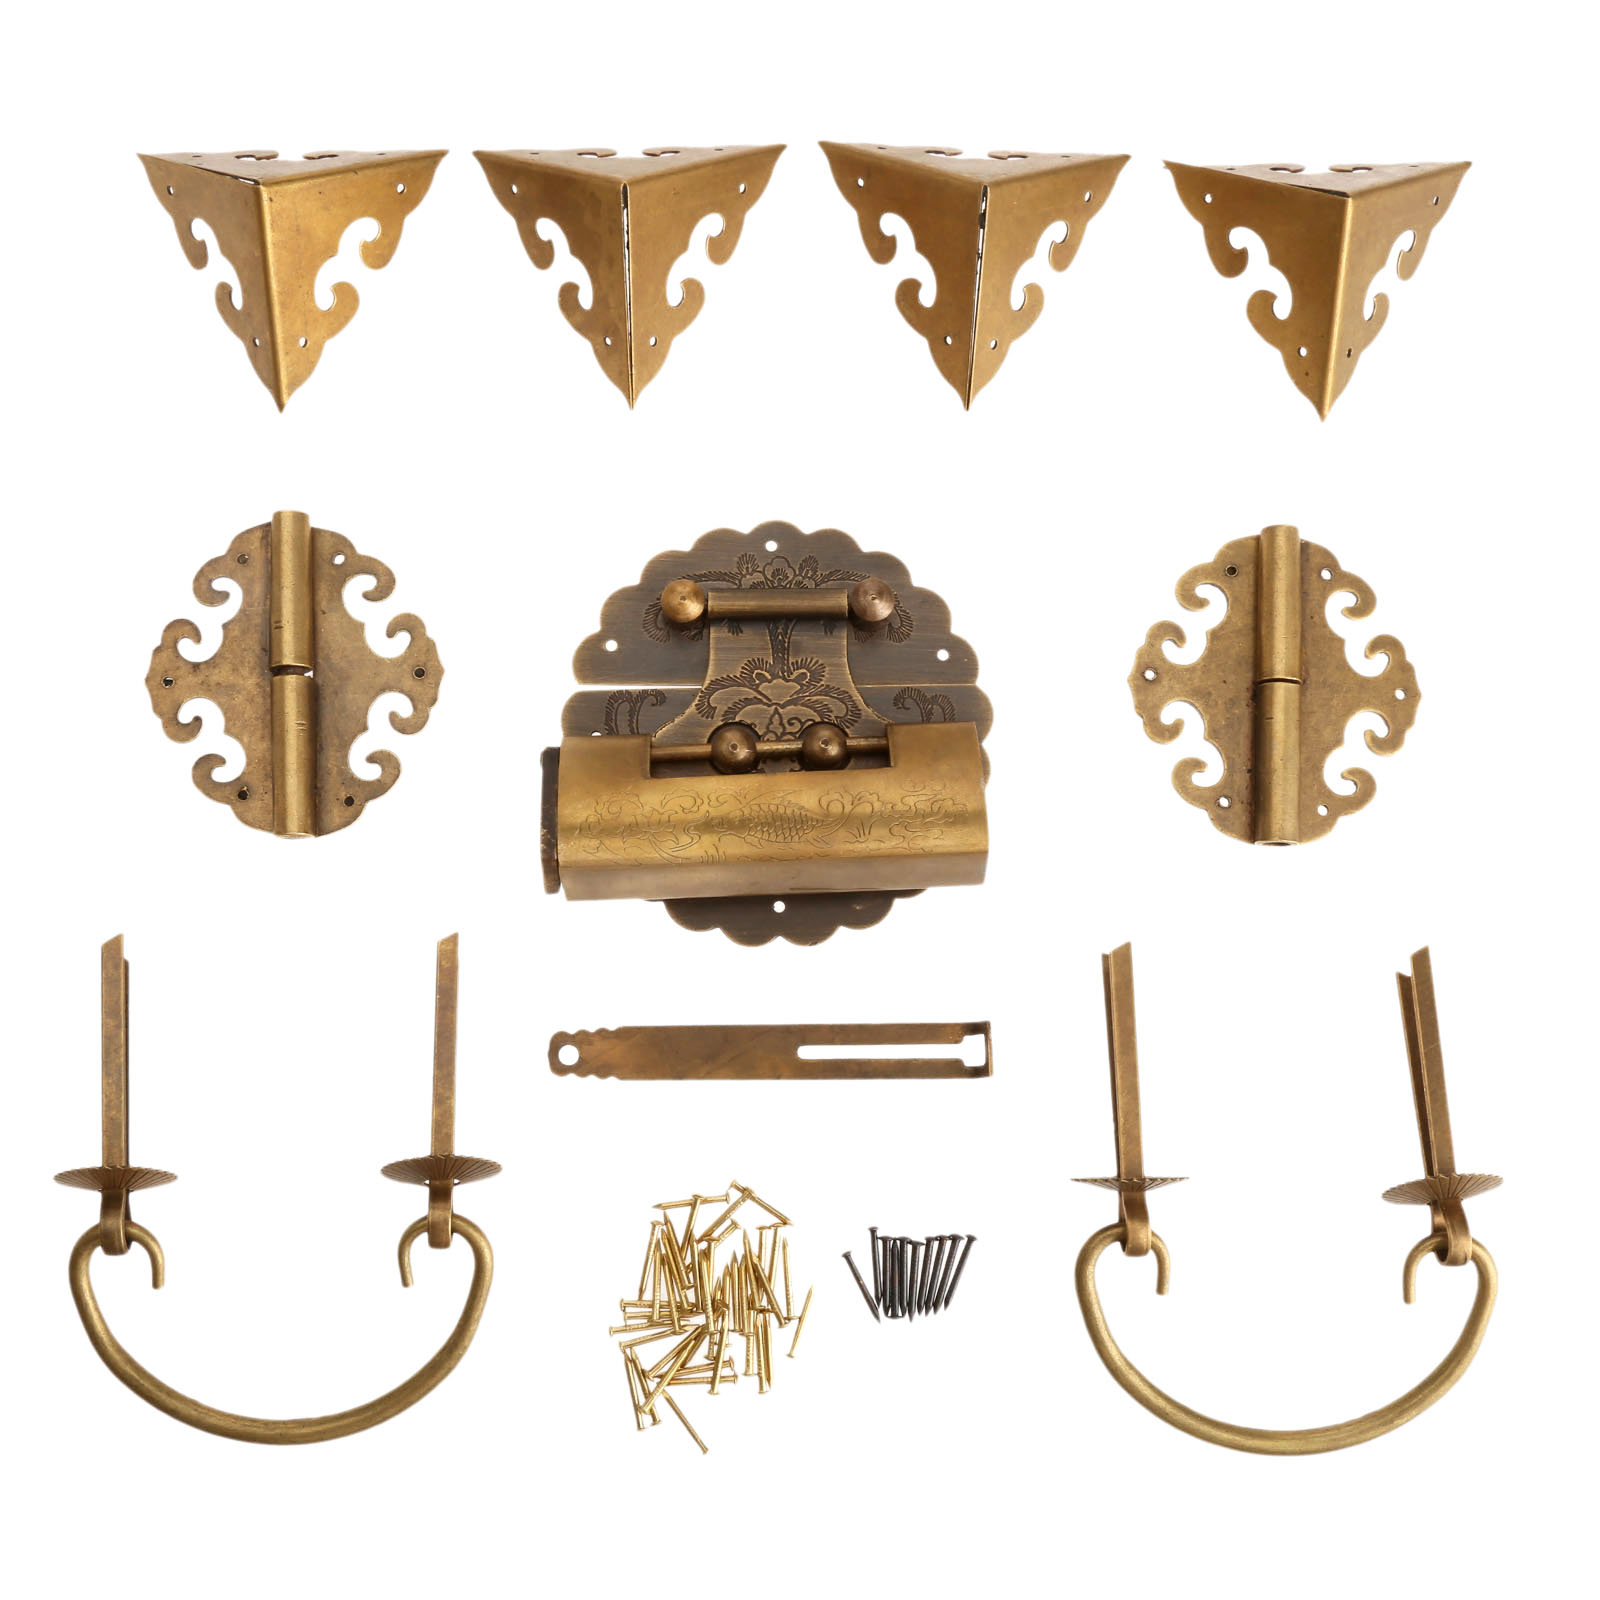 Brass Hardware Set Antique Wooden Box Knobs and Handles +Hinges +Latch +Lock+U-shaped Pin+Corner Protector Furniture Decoration<br><br>Aliexpress